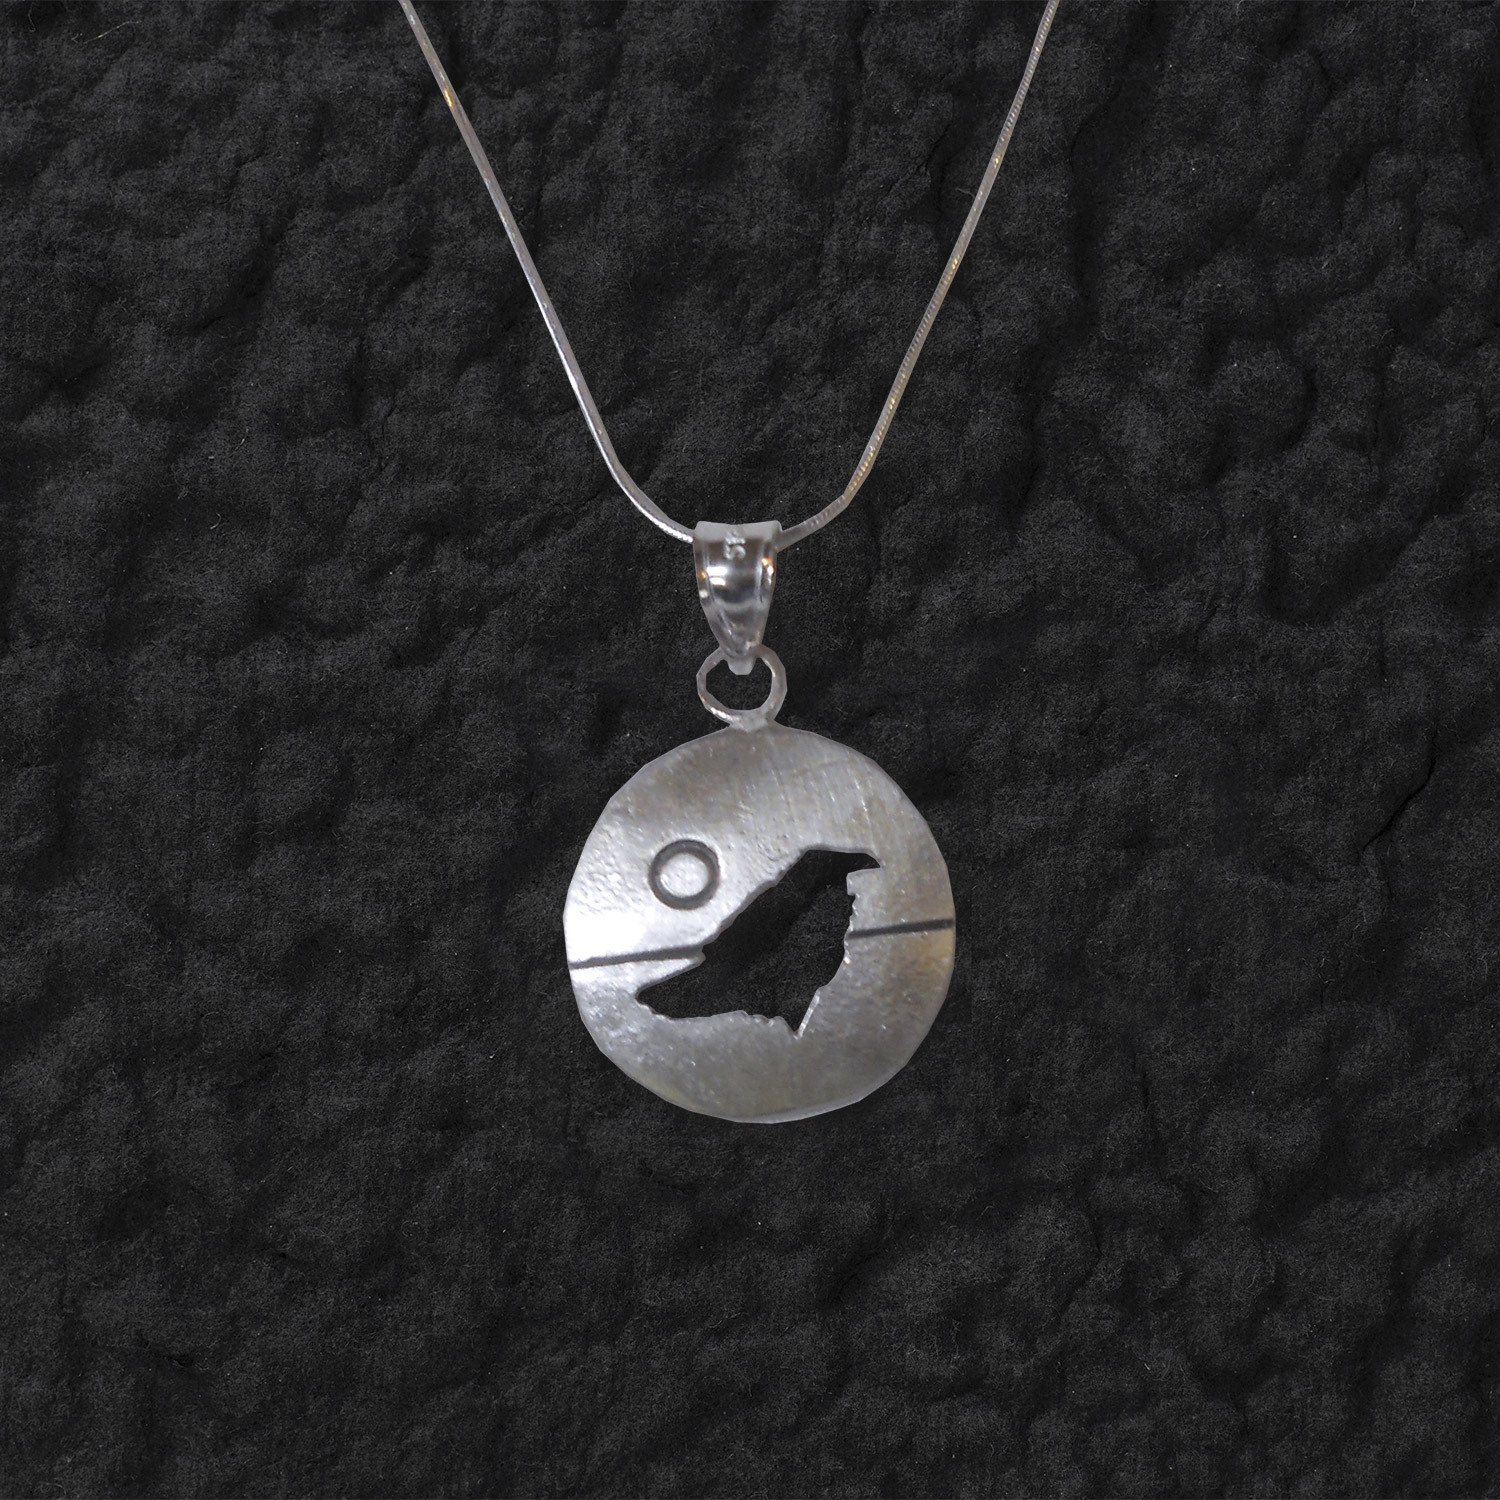 Raven pendant by lineage design boundary waters piragis raven pendant item sa205 aloadofball Choice Image